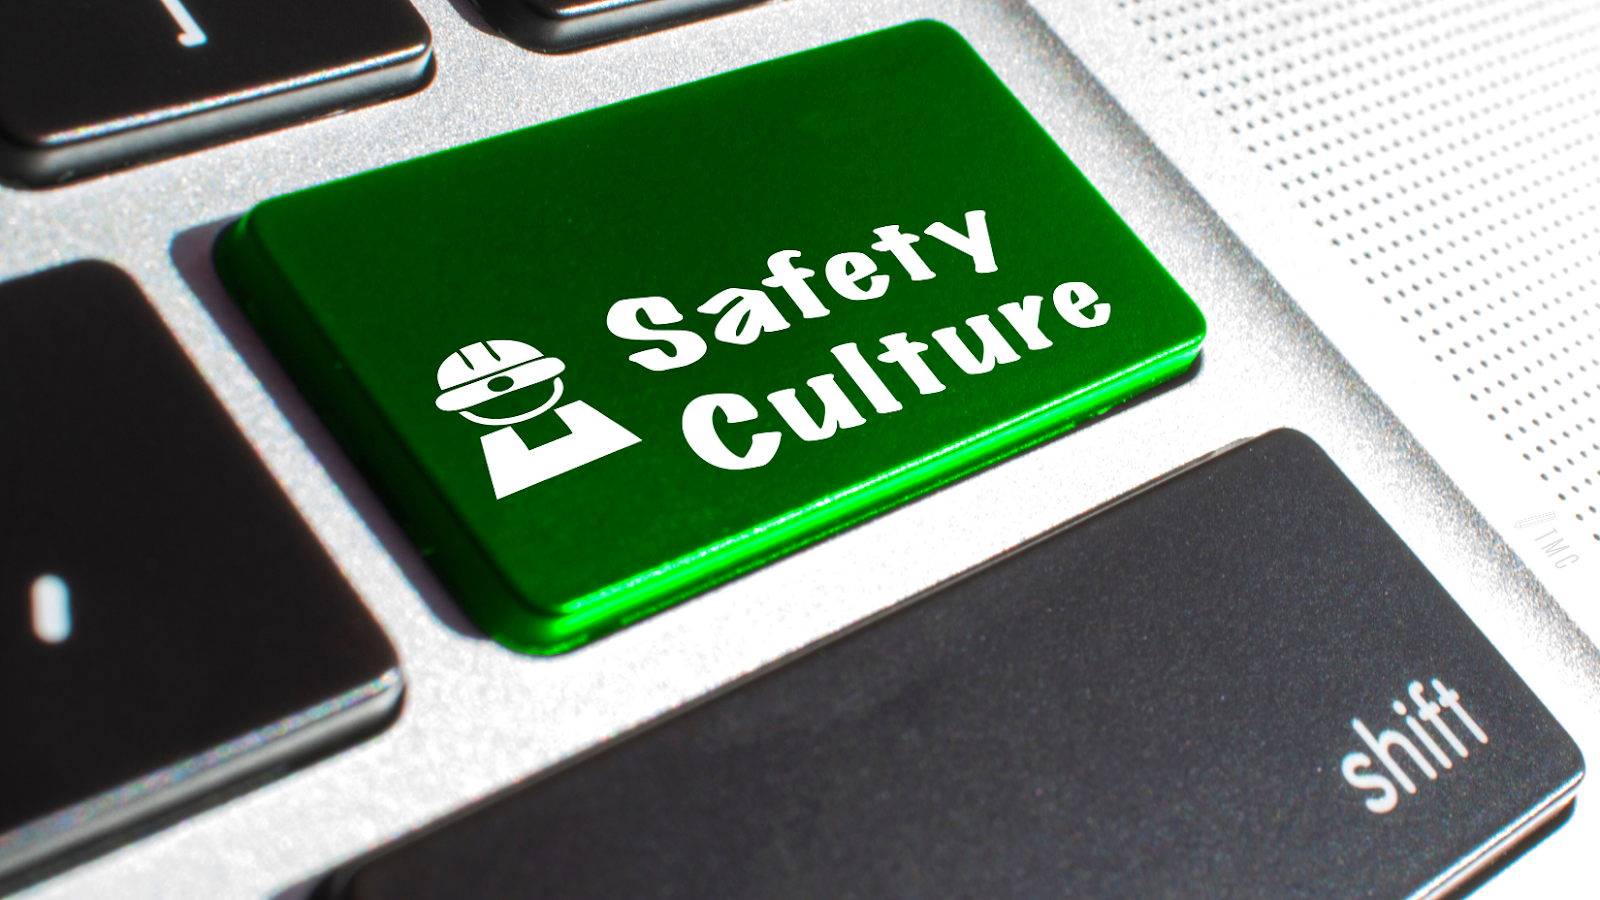 Cyber safety culture